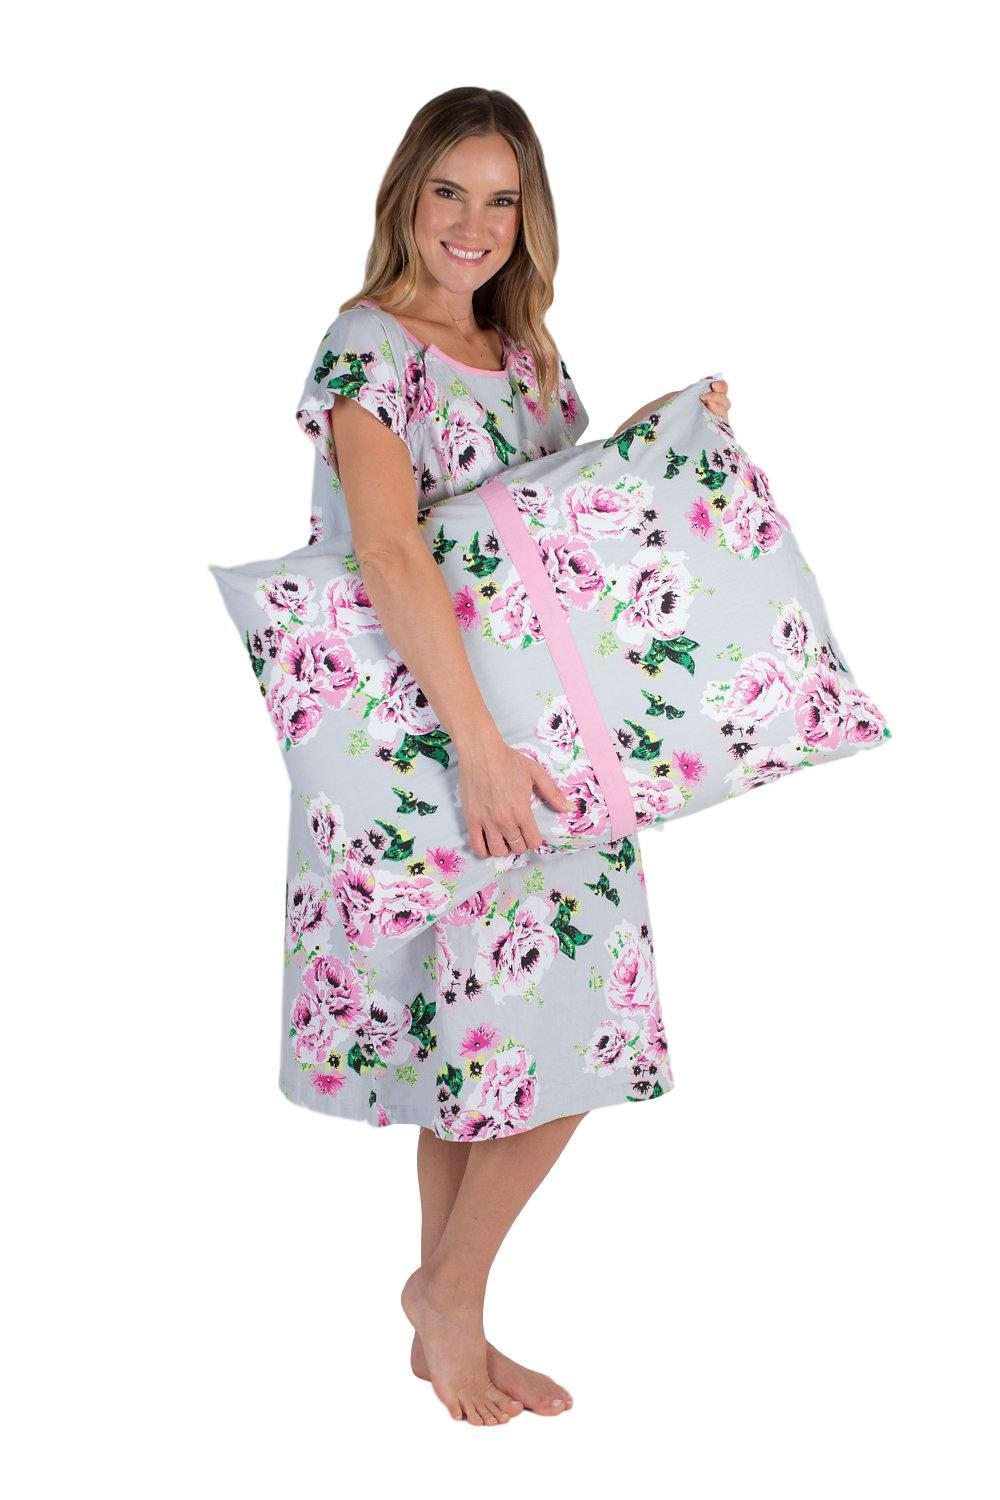 Olivia Patient Hospital Gown & Pillowcase Set – Gownies